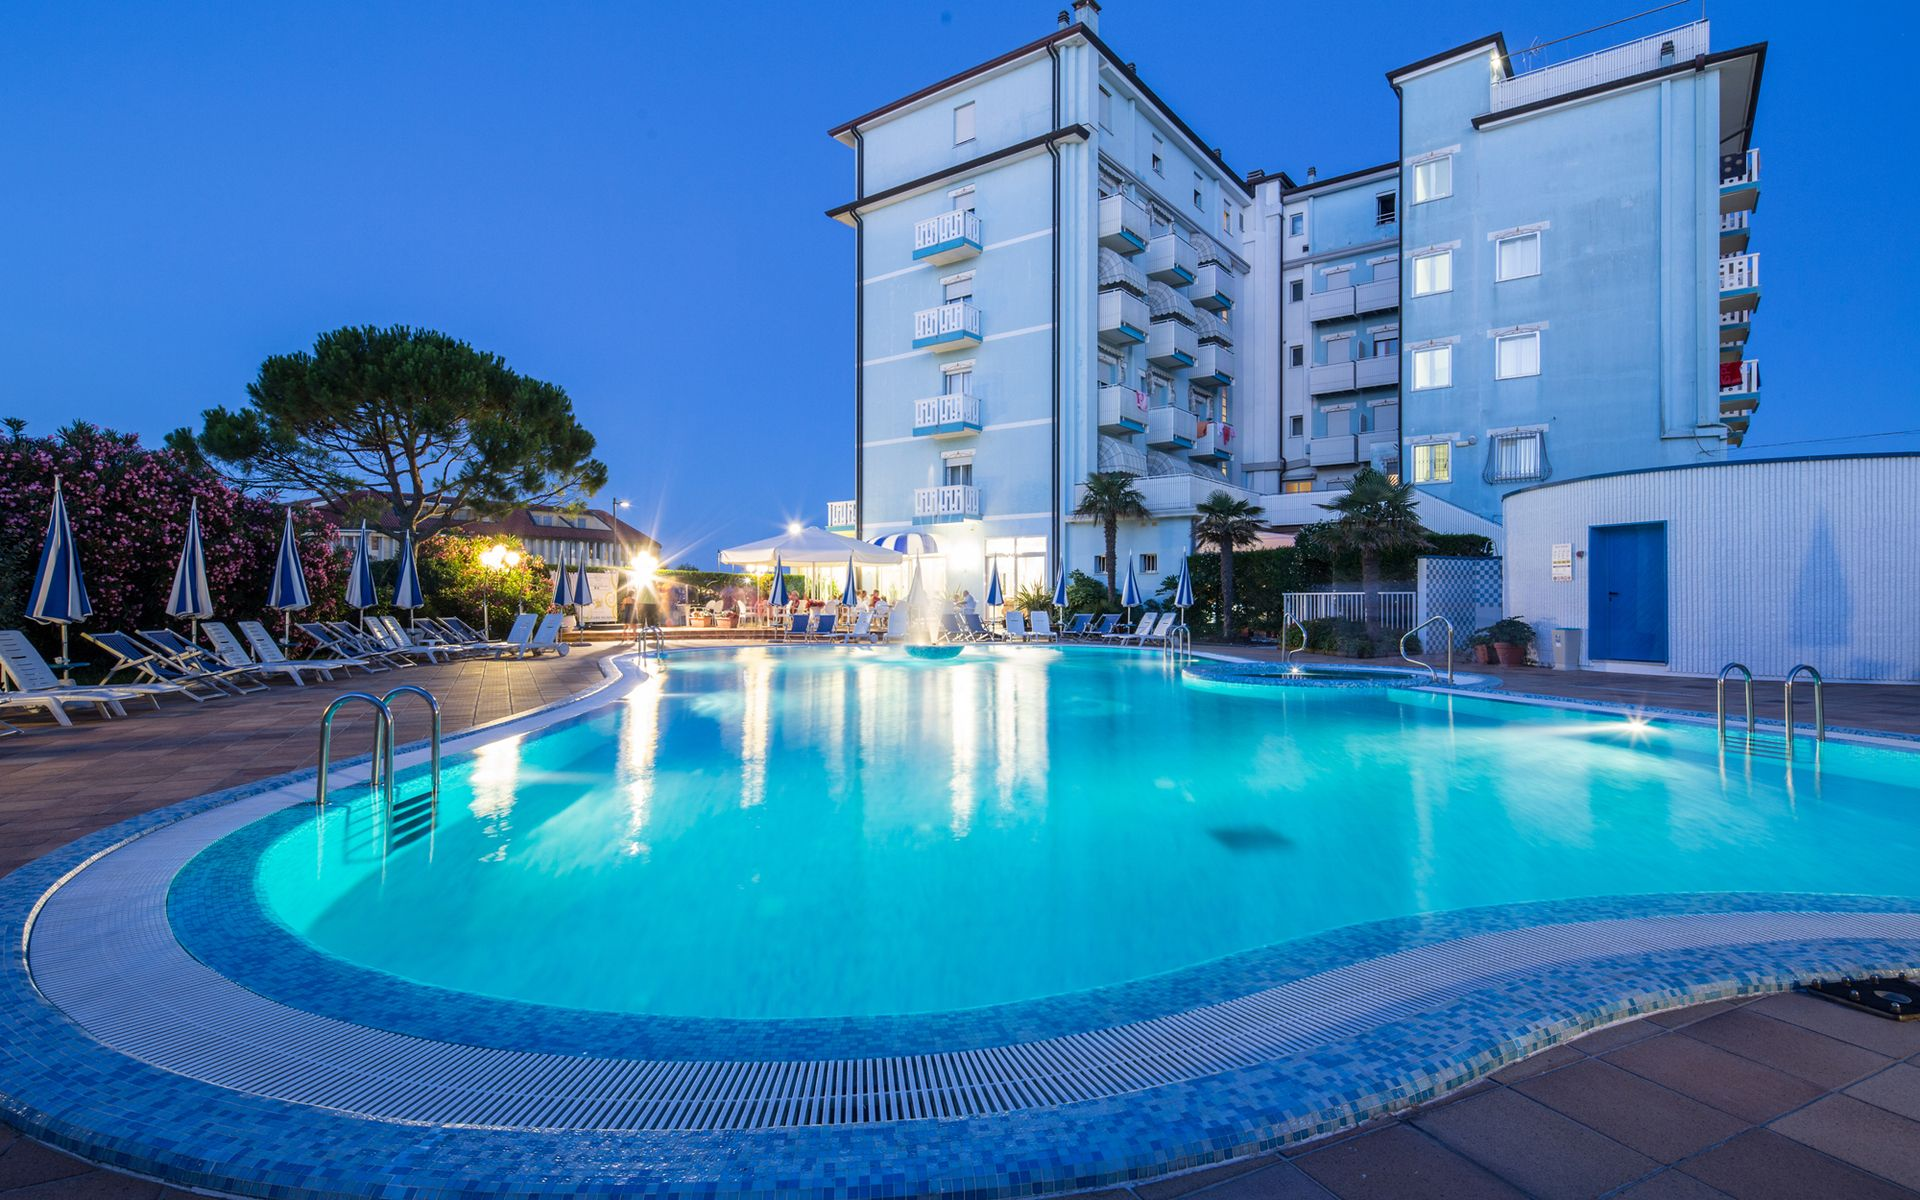 Piscina Hotel Hotels Caorle Beheitztes Schwimmbad Hotel Principe